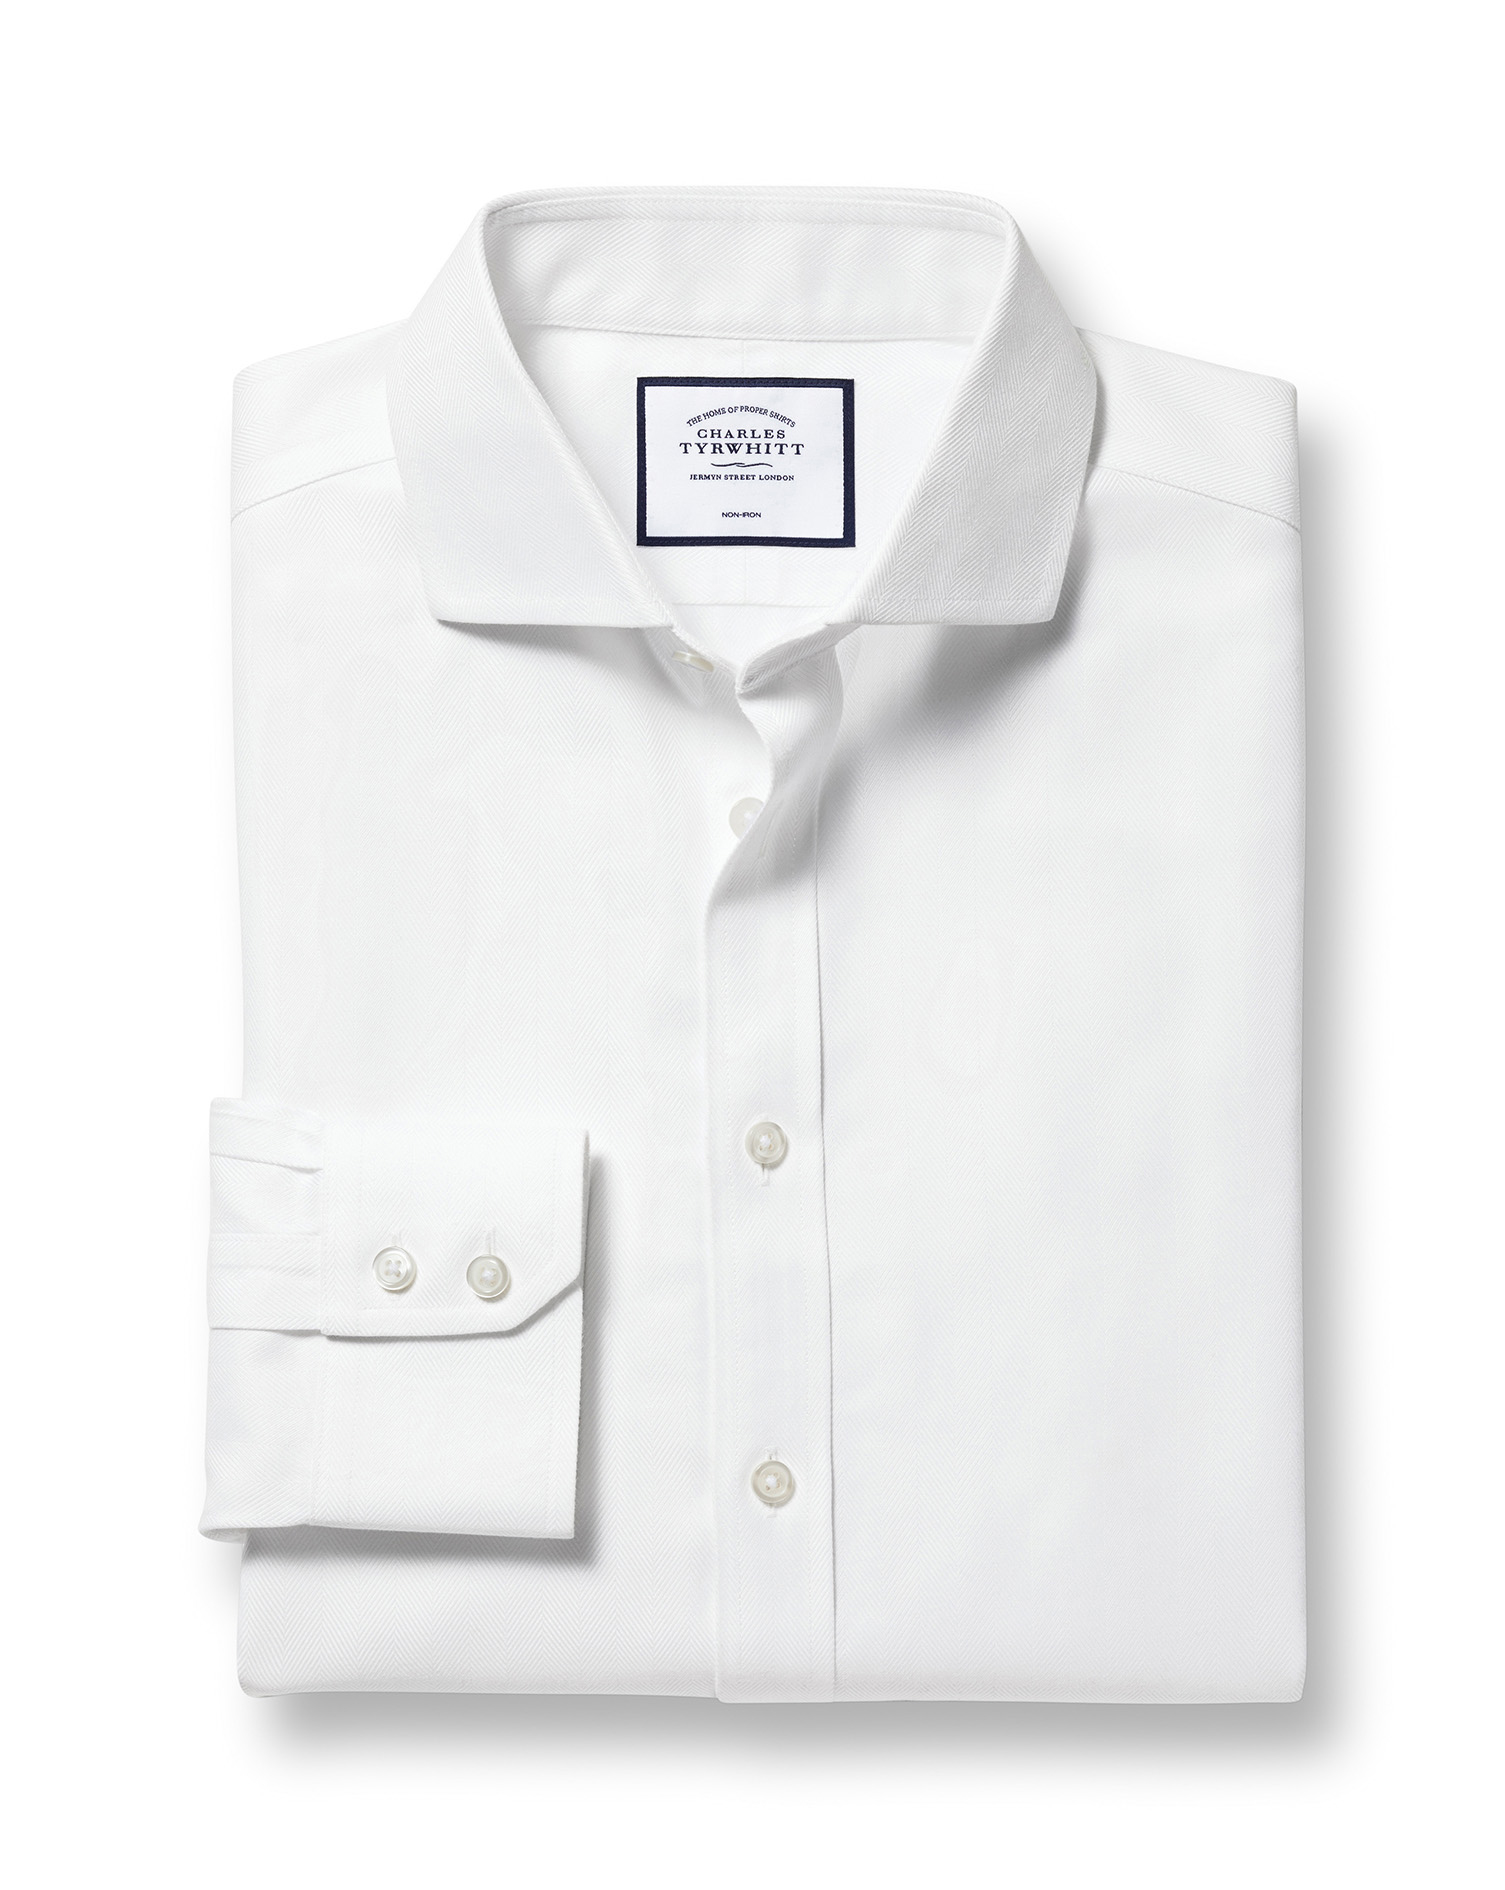 Slim Fit Cutaway Non-Iron Herringbone White Cotton Formal Shirt Single Cuff Size 17.5/35 by Charles